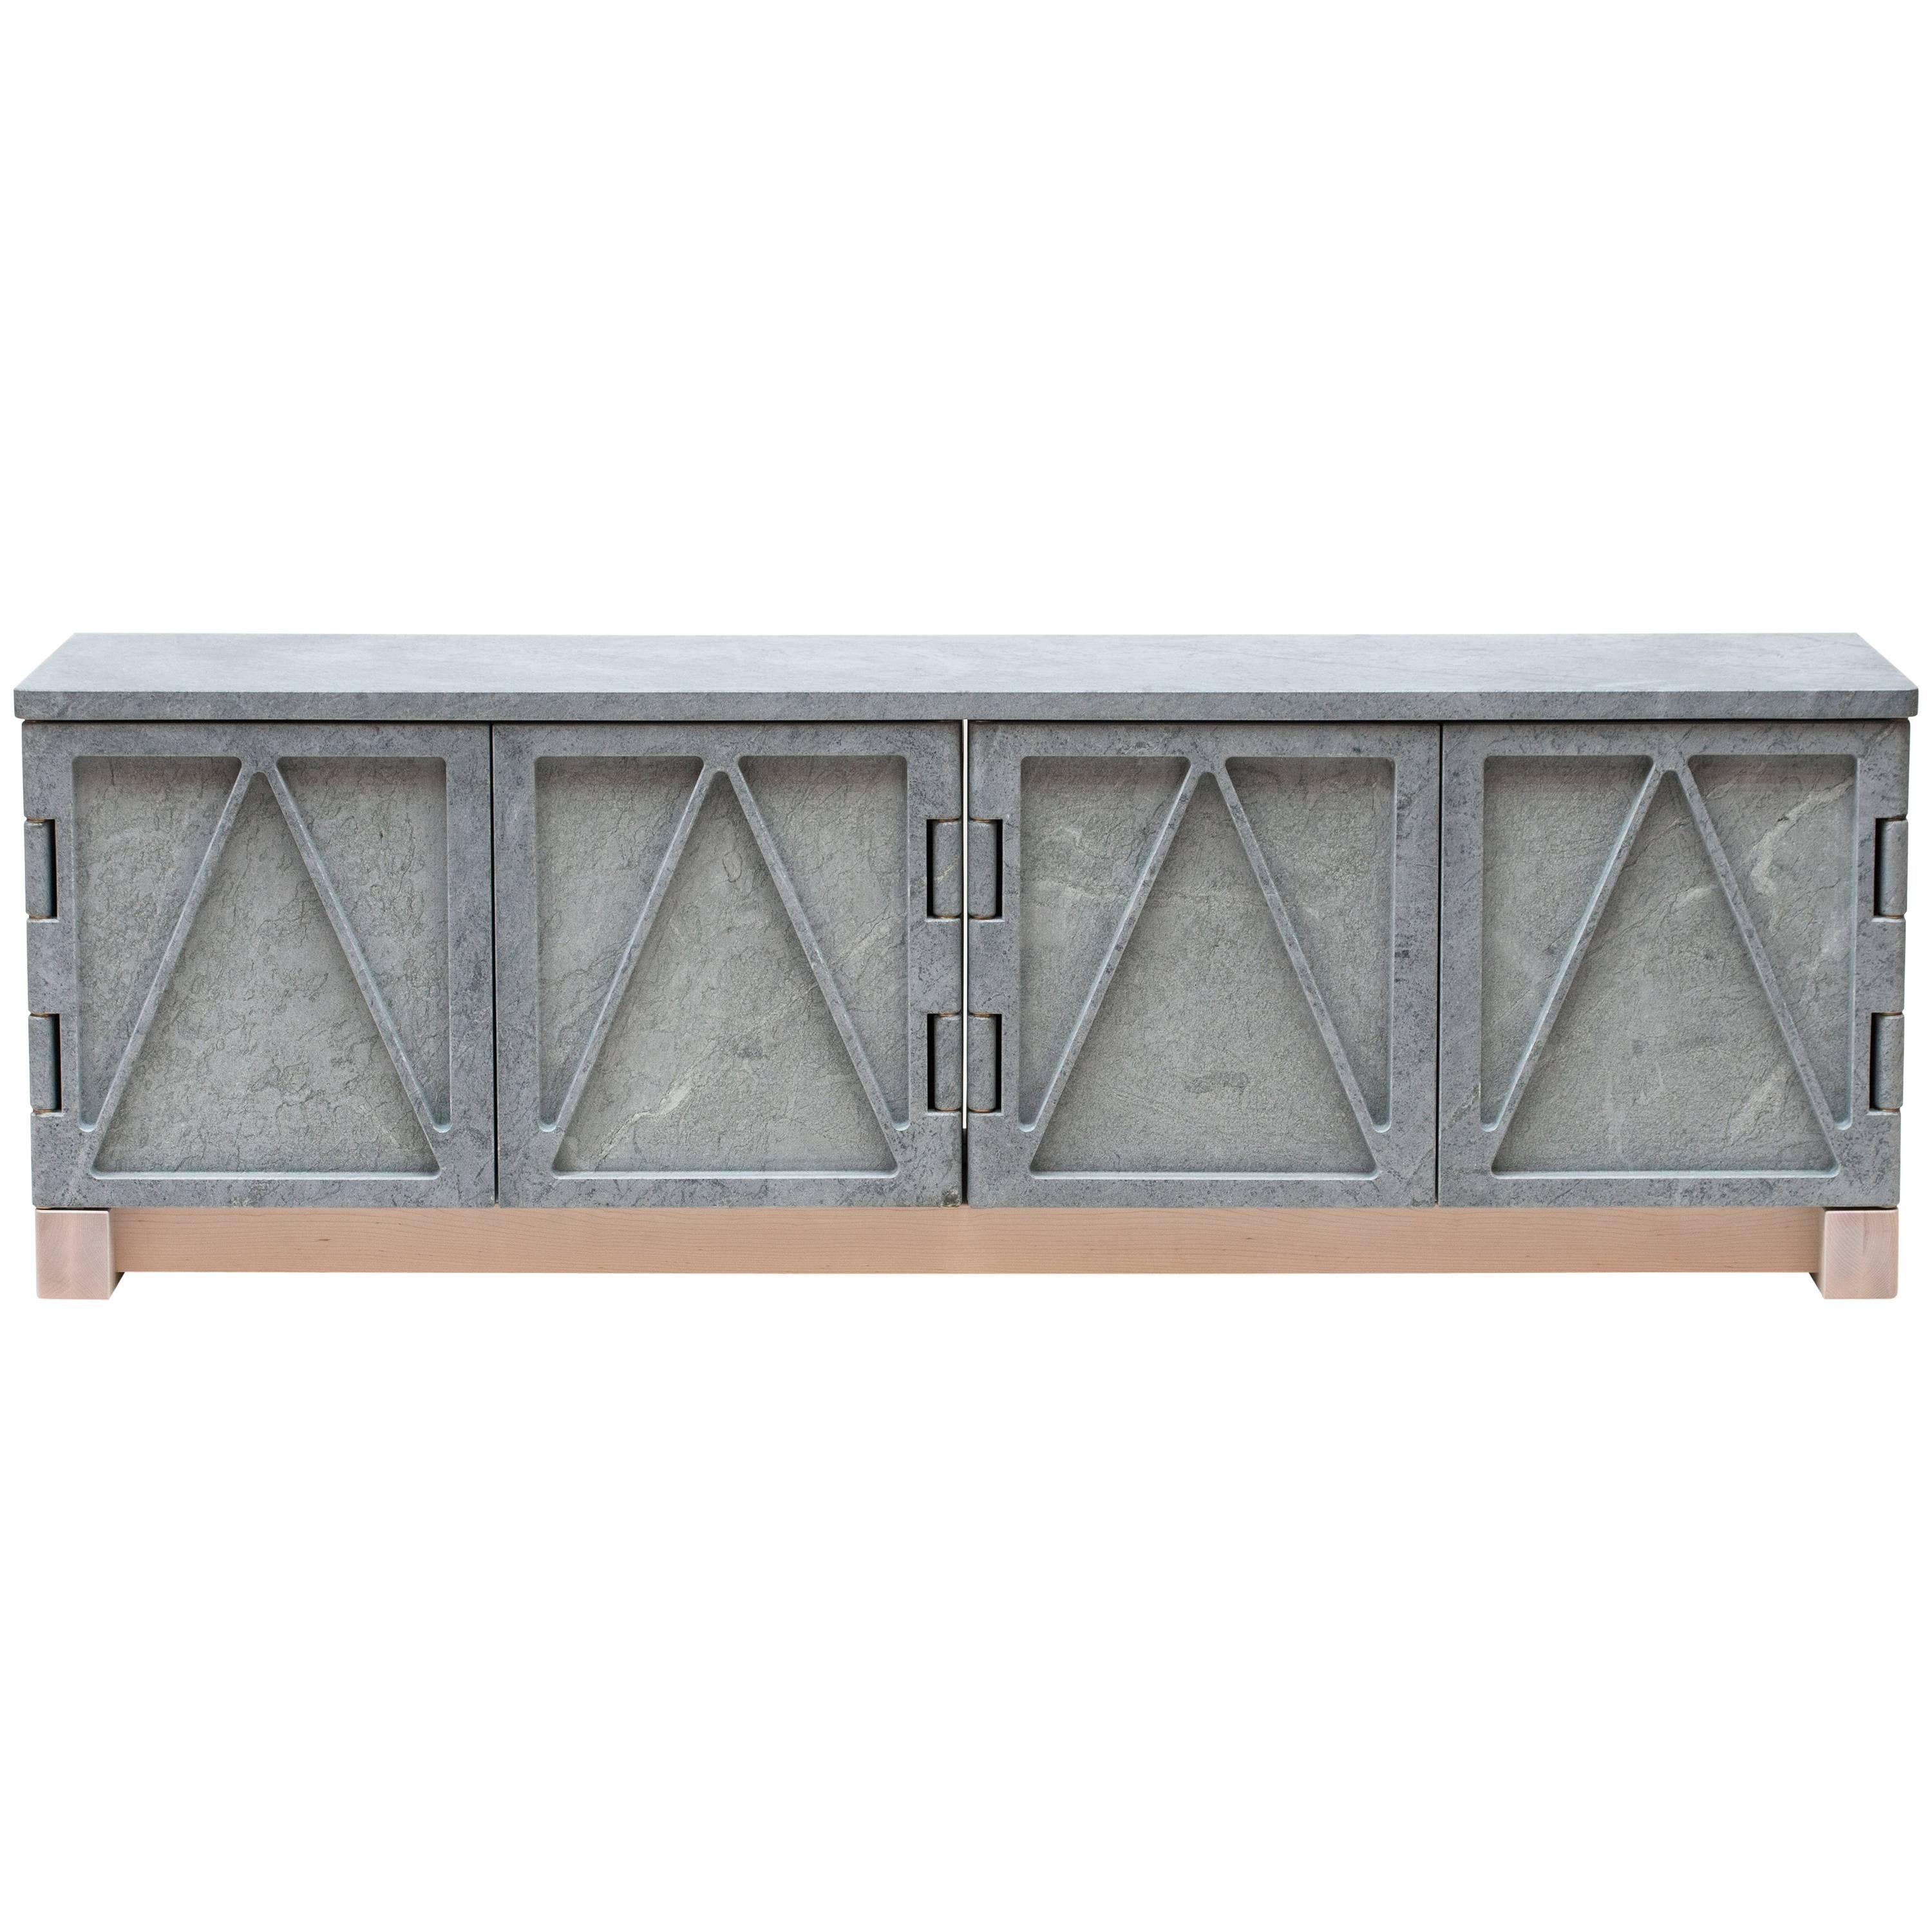 Limited Edition Relief Stone Credenza in Soapstone by Fort Standard